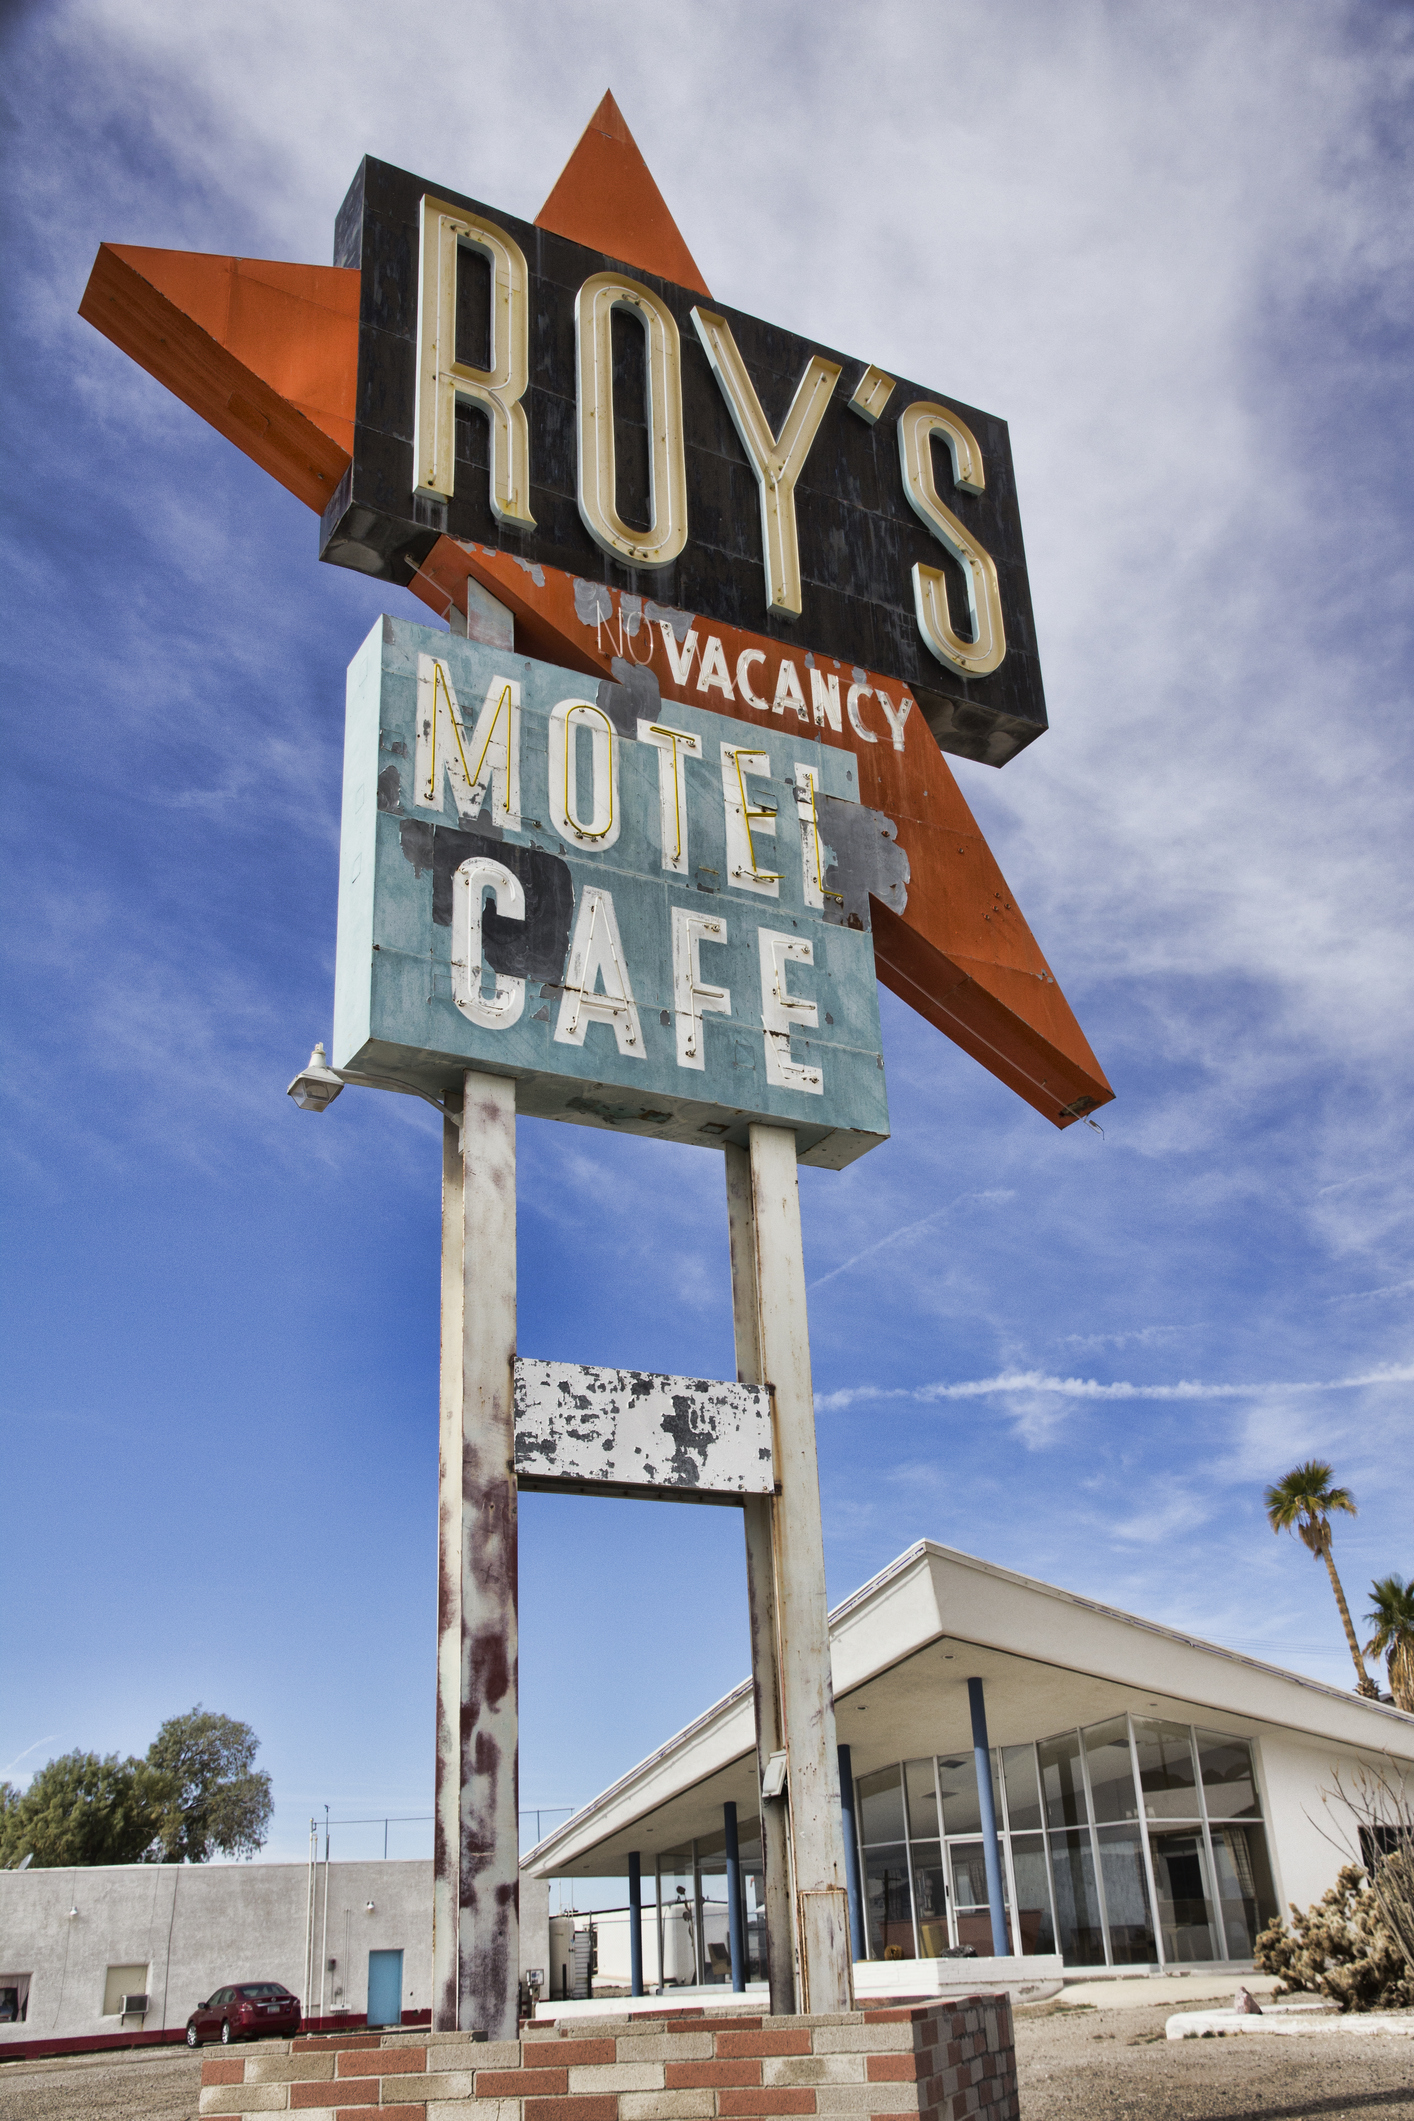 "In 1959, the 50 ft tall, neon, Roy's sign was erected, making the town of Amboy visible for miles and became the ""must see"" attraction to all visitors.  The sign's neon tubing is currently being restored and will be repainted afterwords. Amboy plans to throw a public event to showcase the relighting of our famous sign."